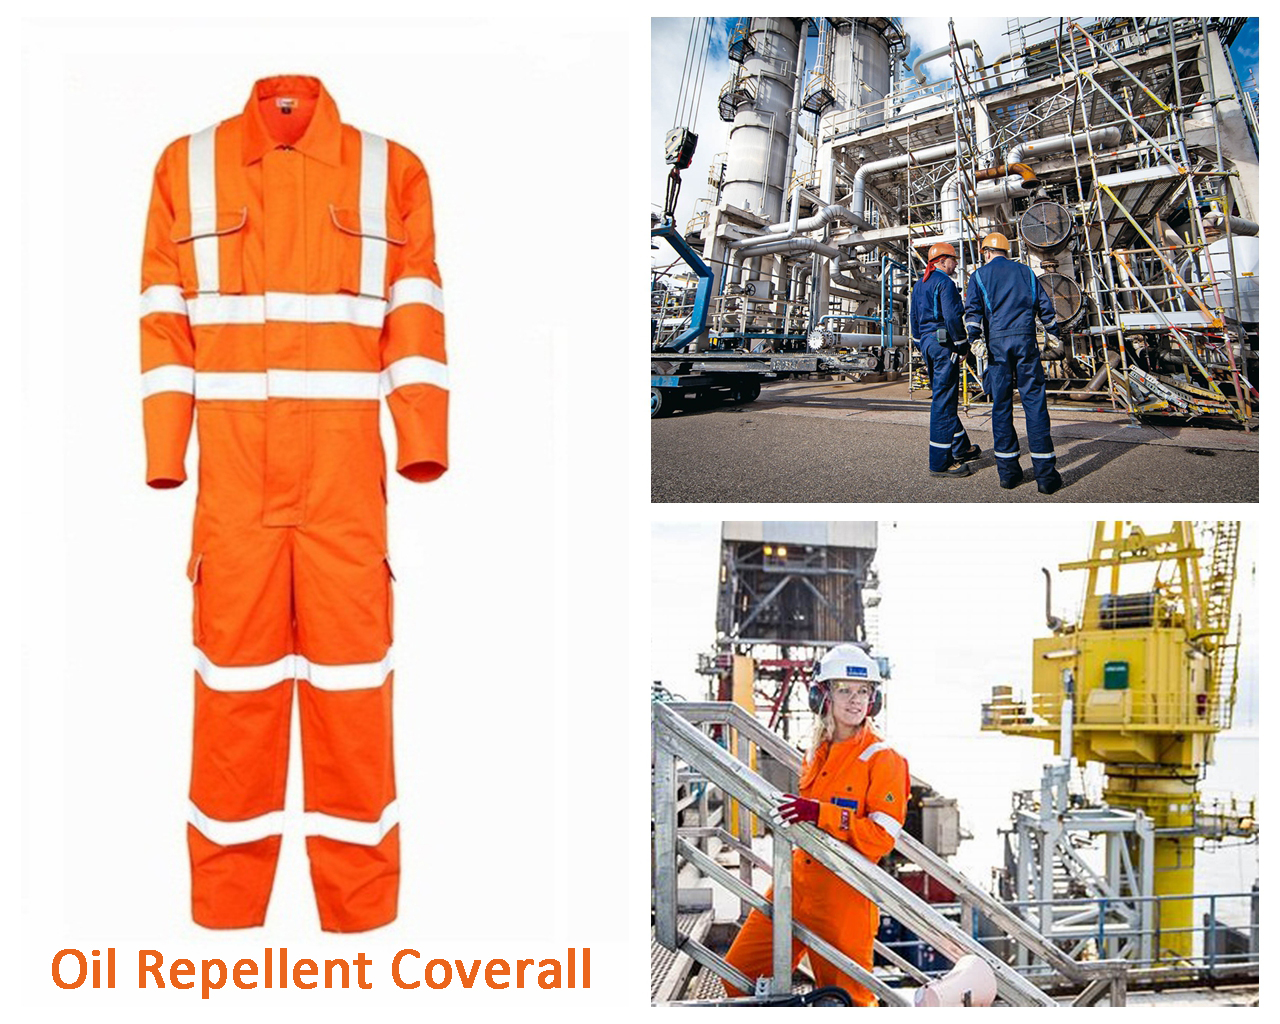 2. Oil Repellent Coverall